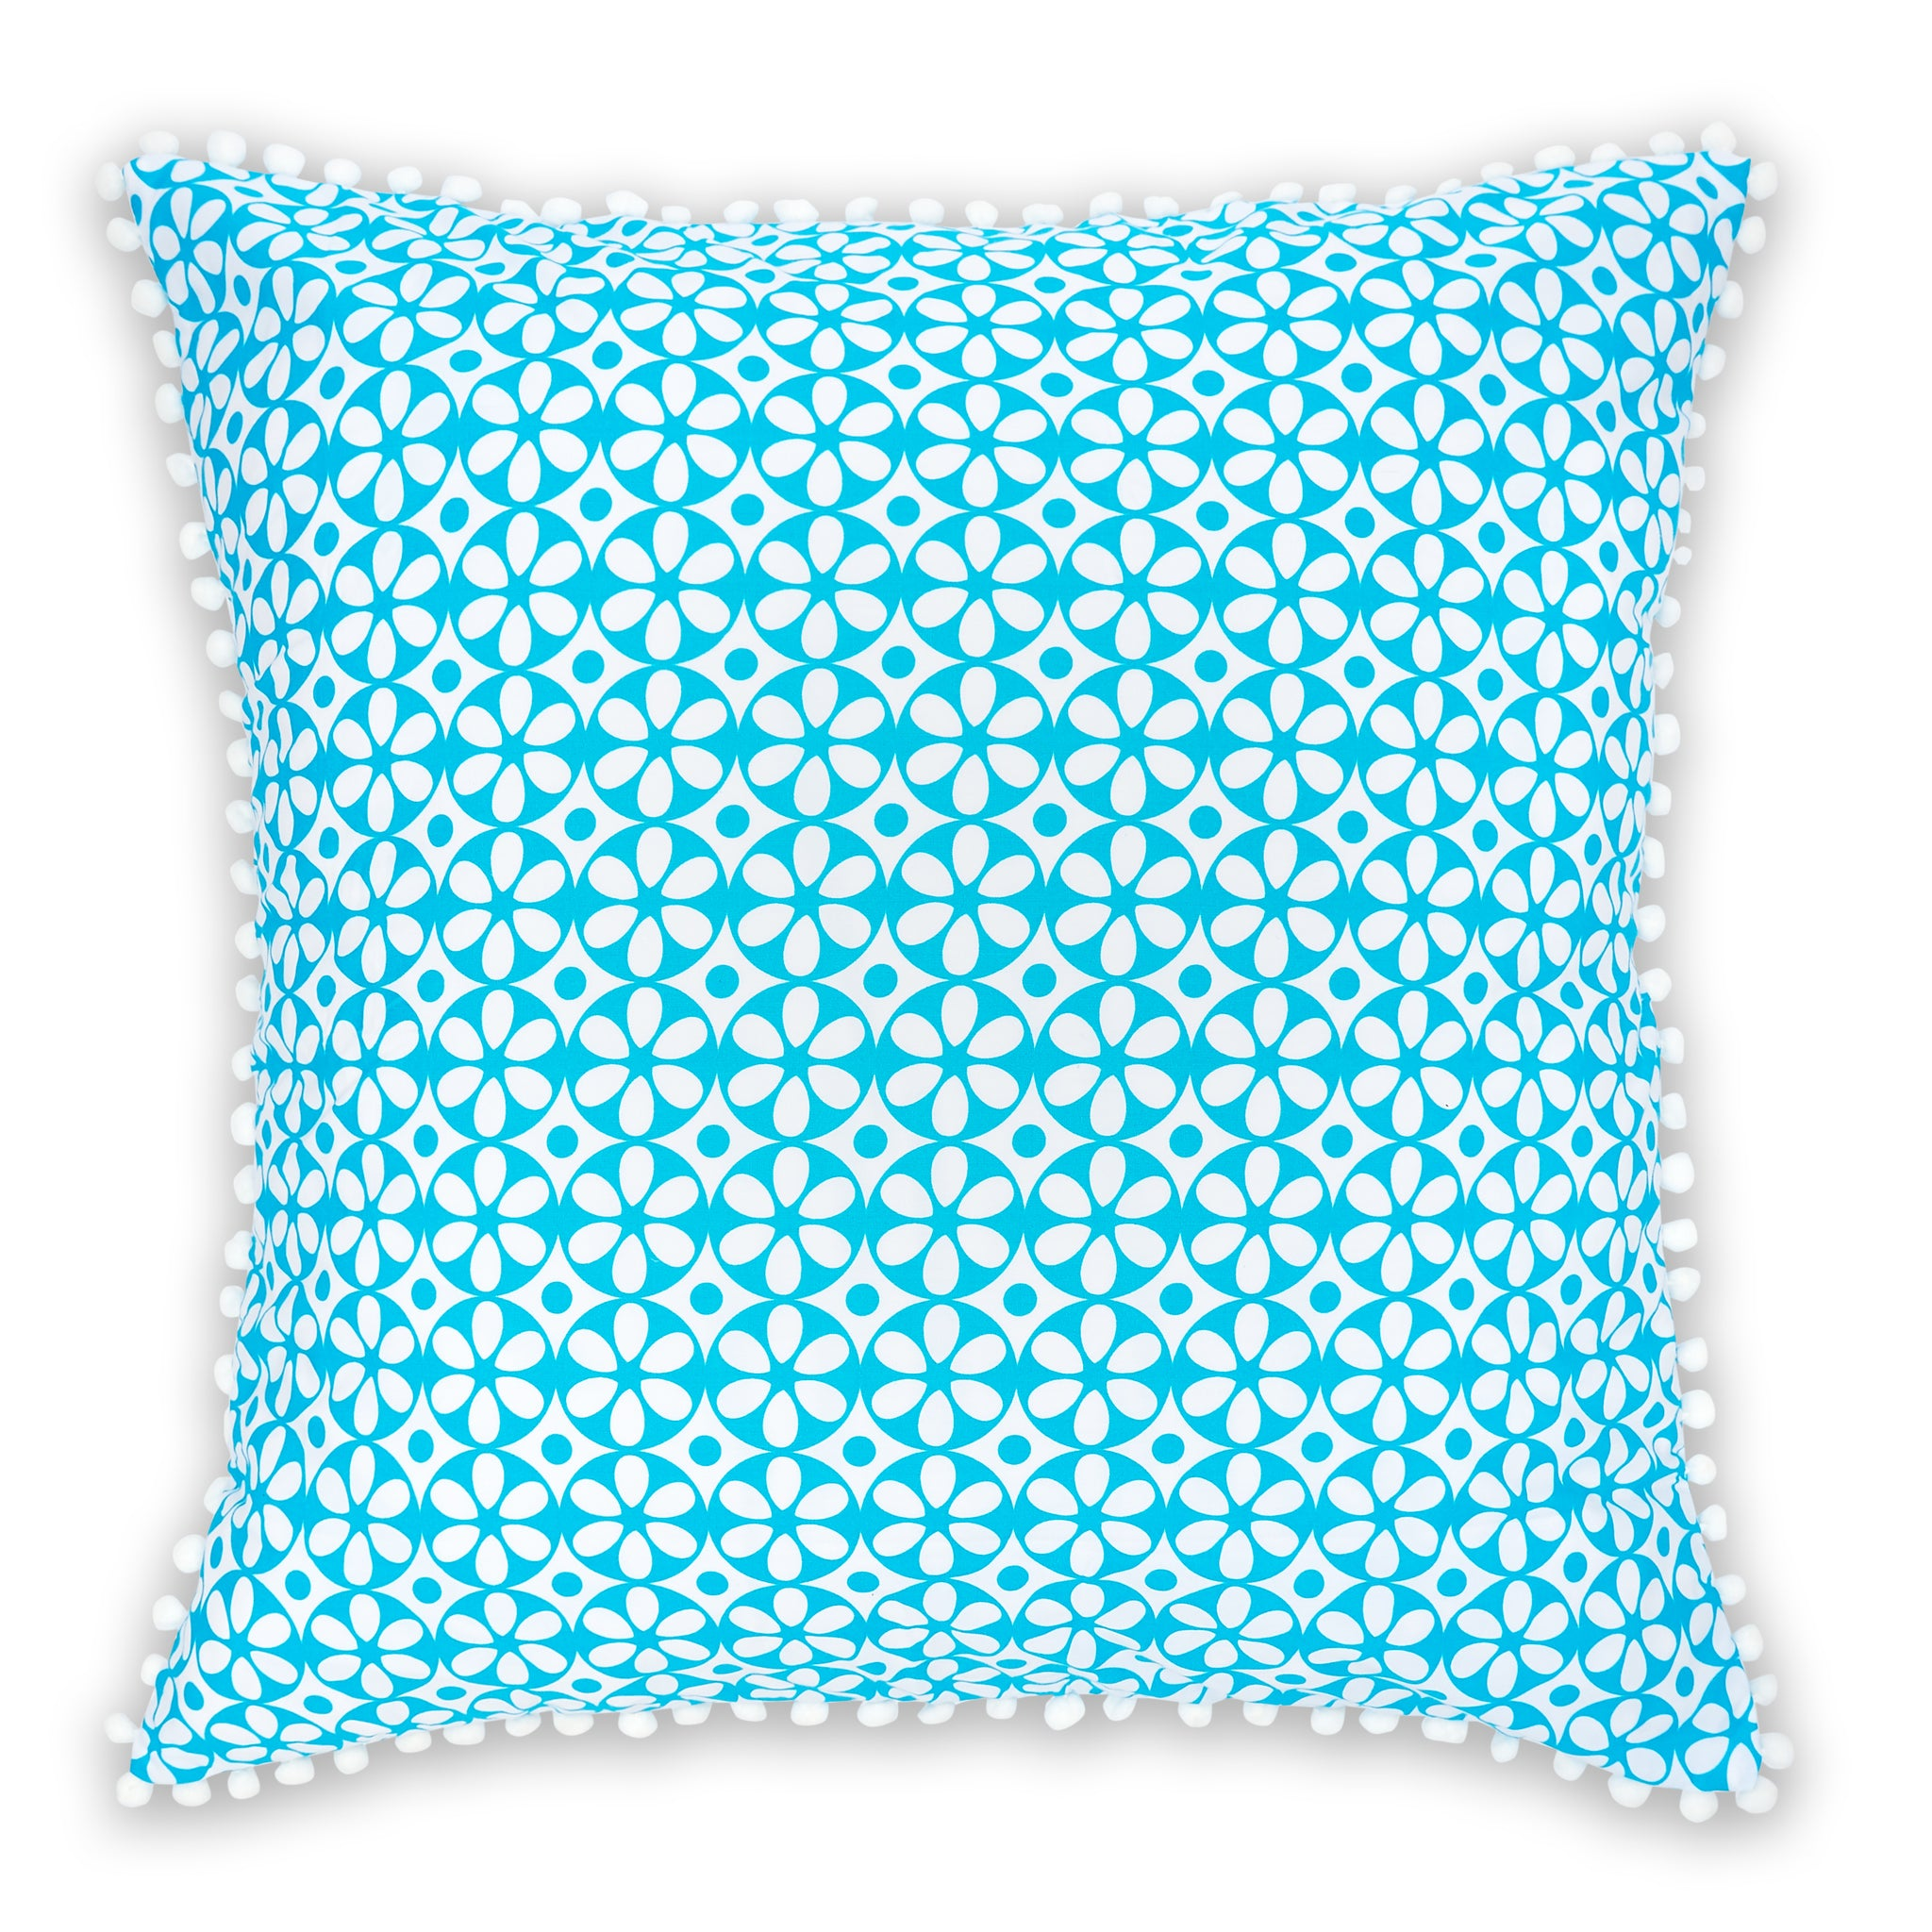 Vivid blue geometric floral printed organic European cushion cover with white pompom trim